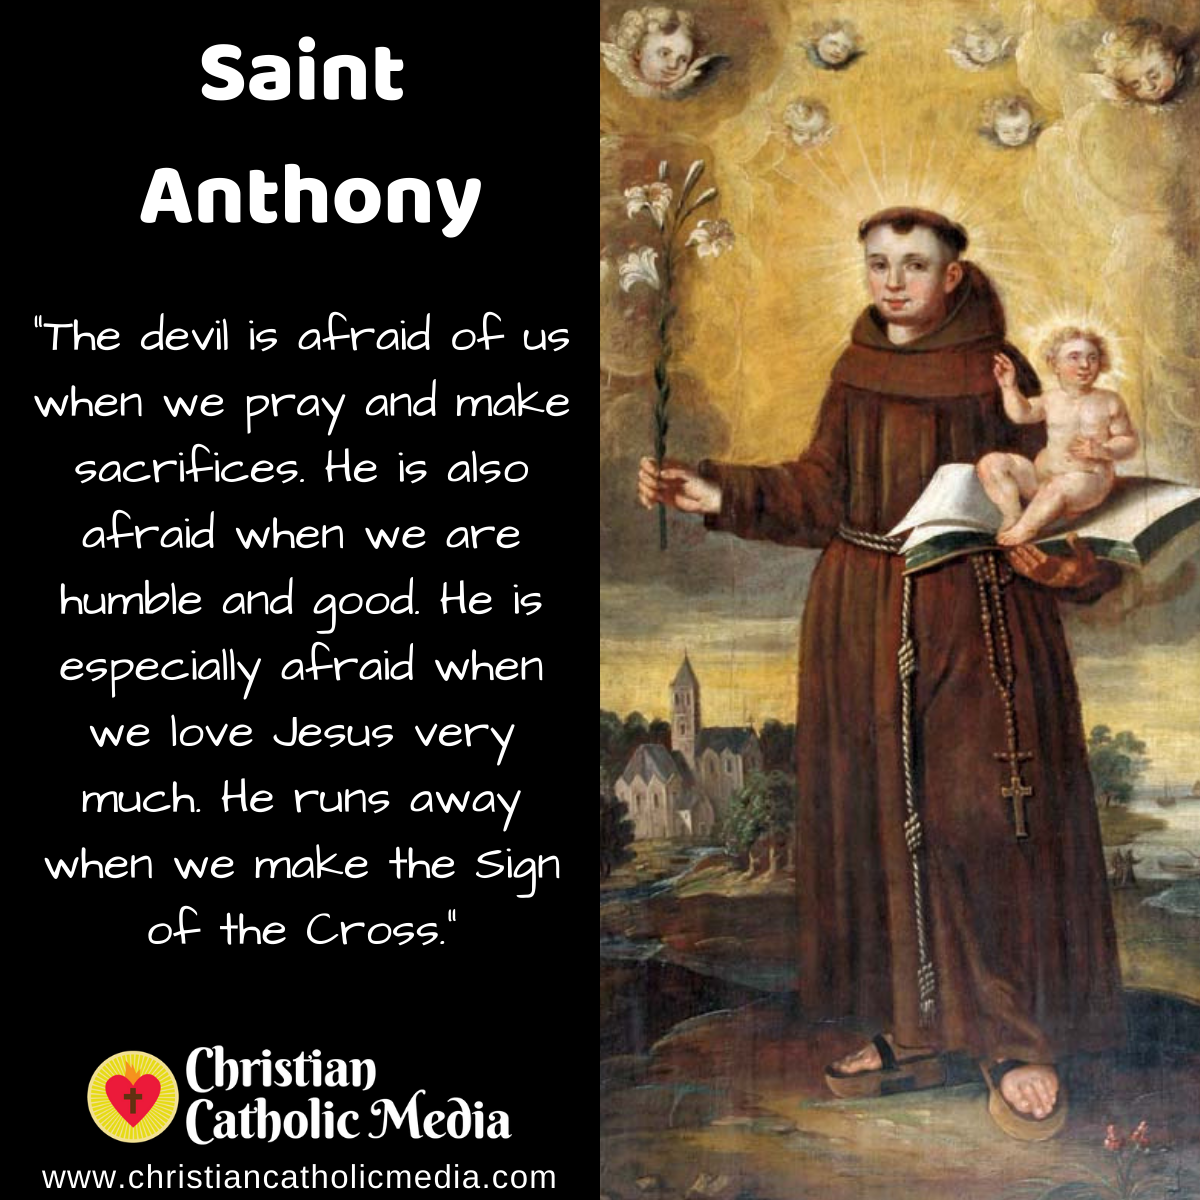 St. Anthony - Saturday June 13, 2020